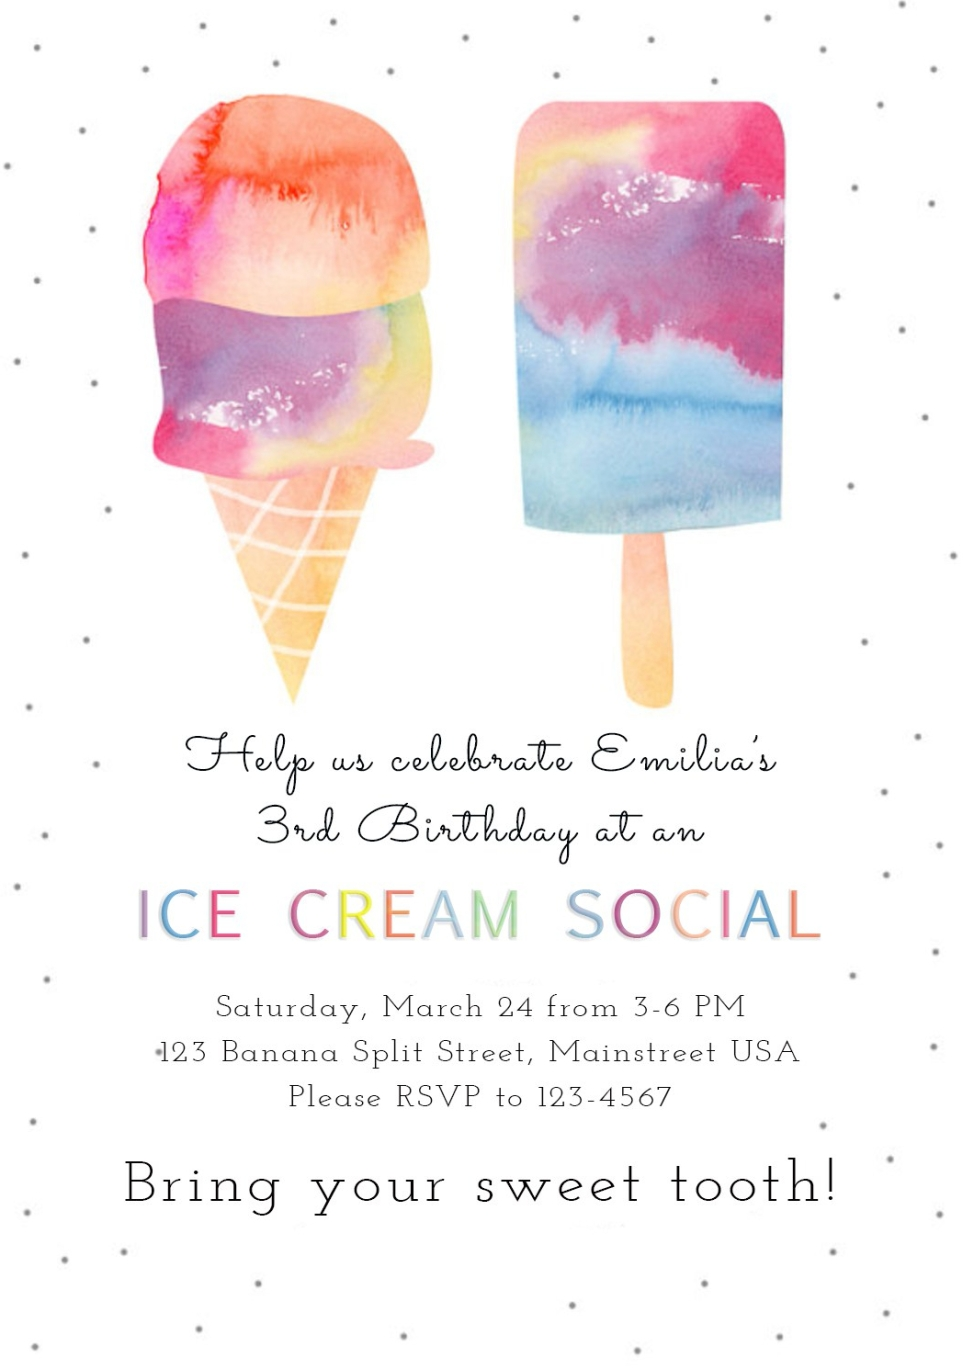 Ice Cream Social Invitation_blog